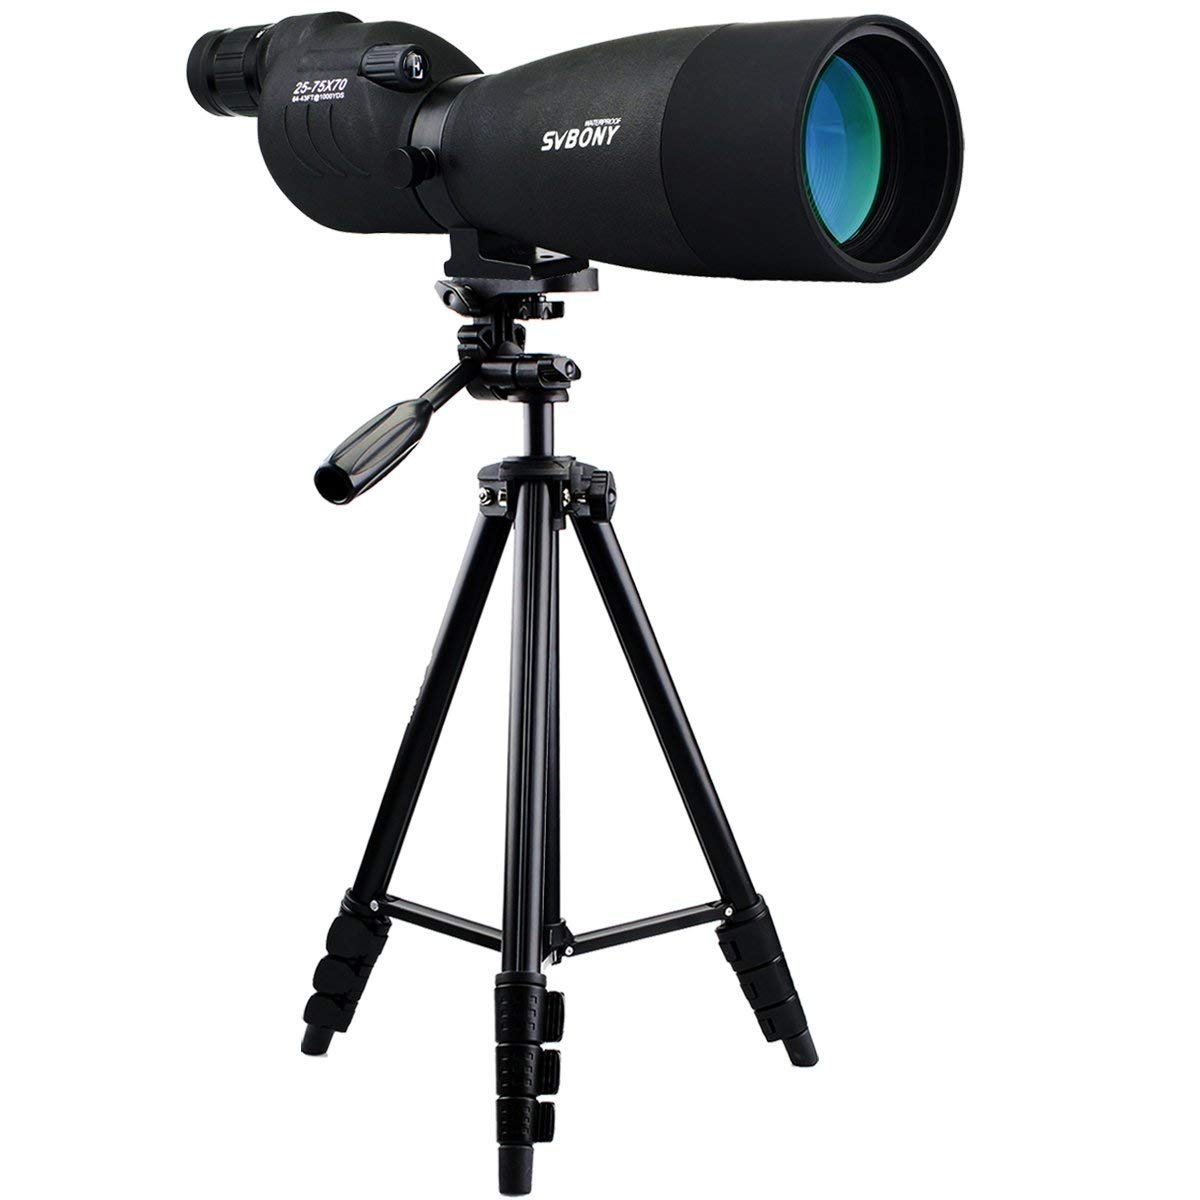 SVBONY SV17 Spotting Scope Straight with Tripod Telescope for Bird Watching Target Shooting Wildlife Viewing BAK4 Prism 4-Section Tripod by SVBONY